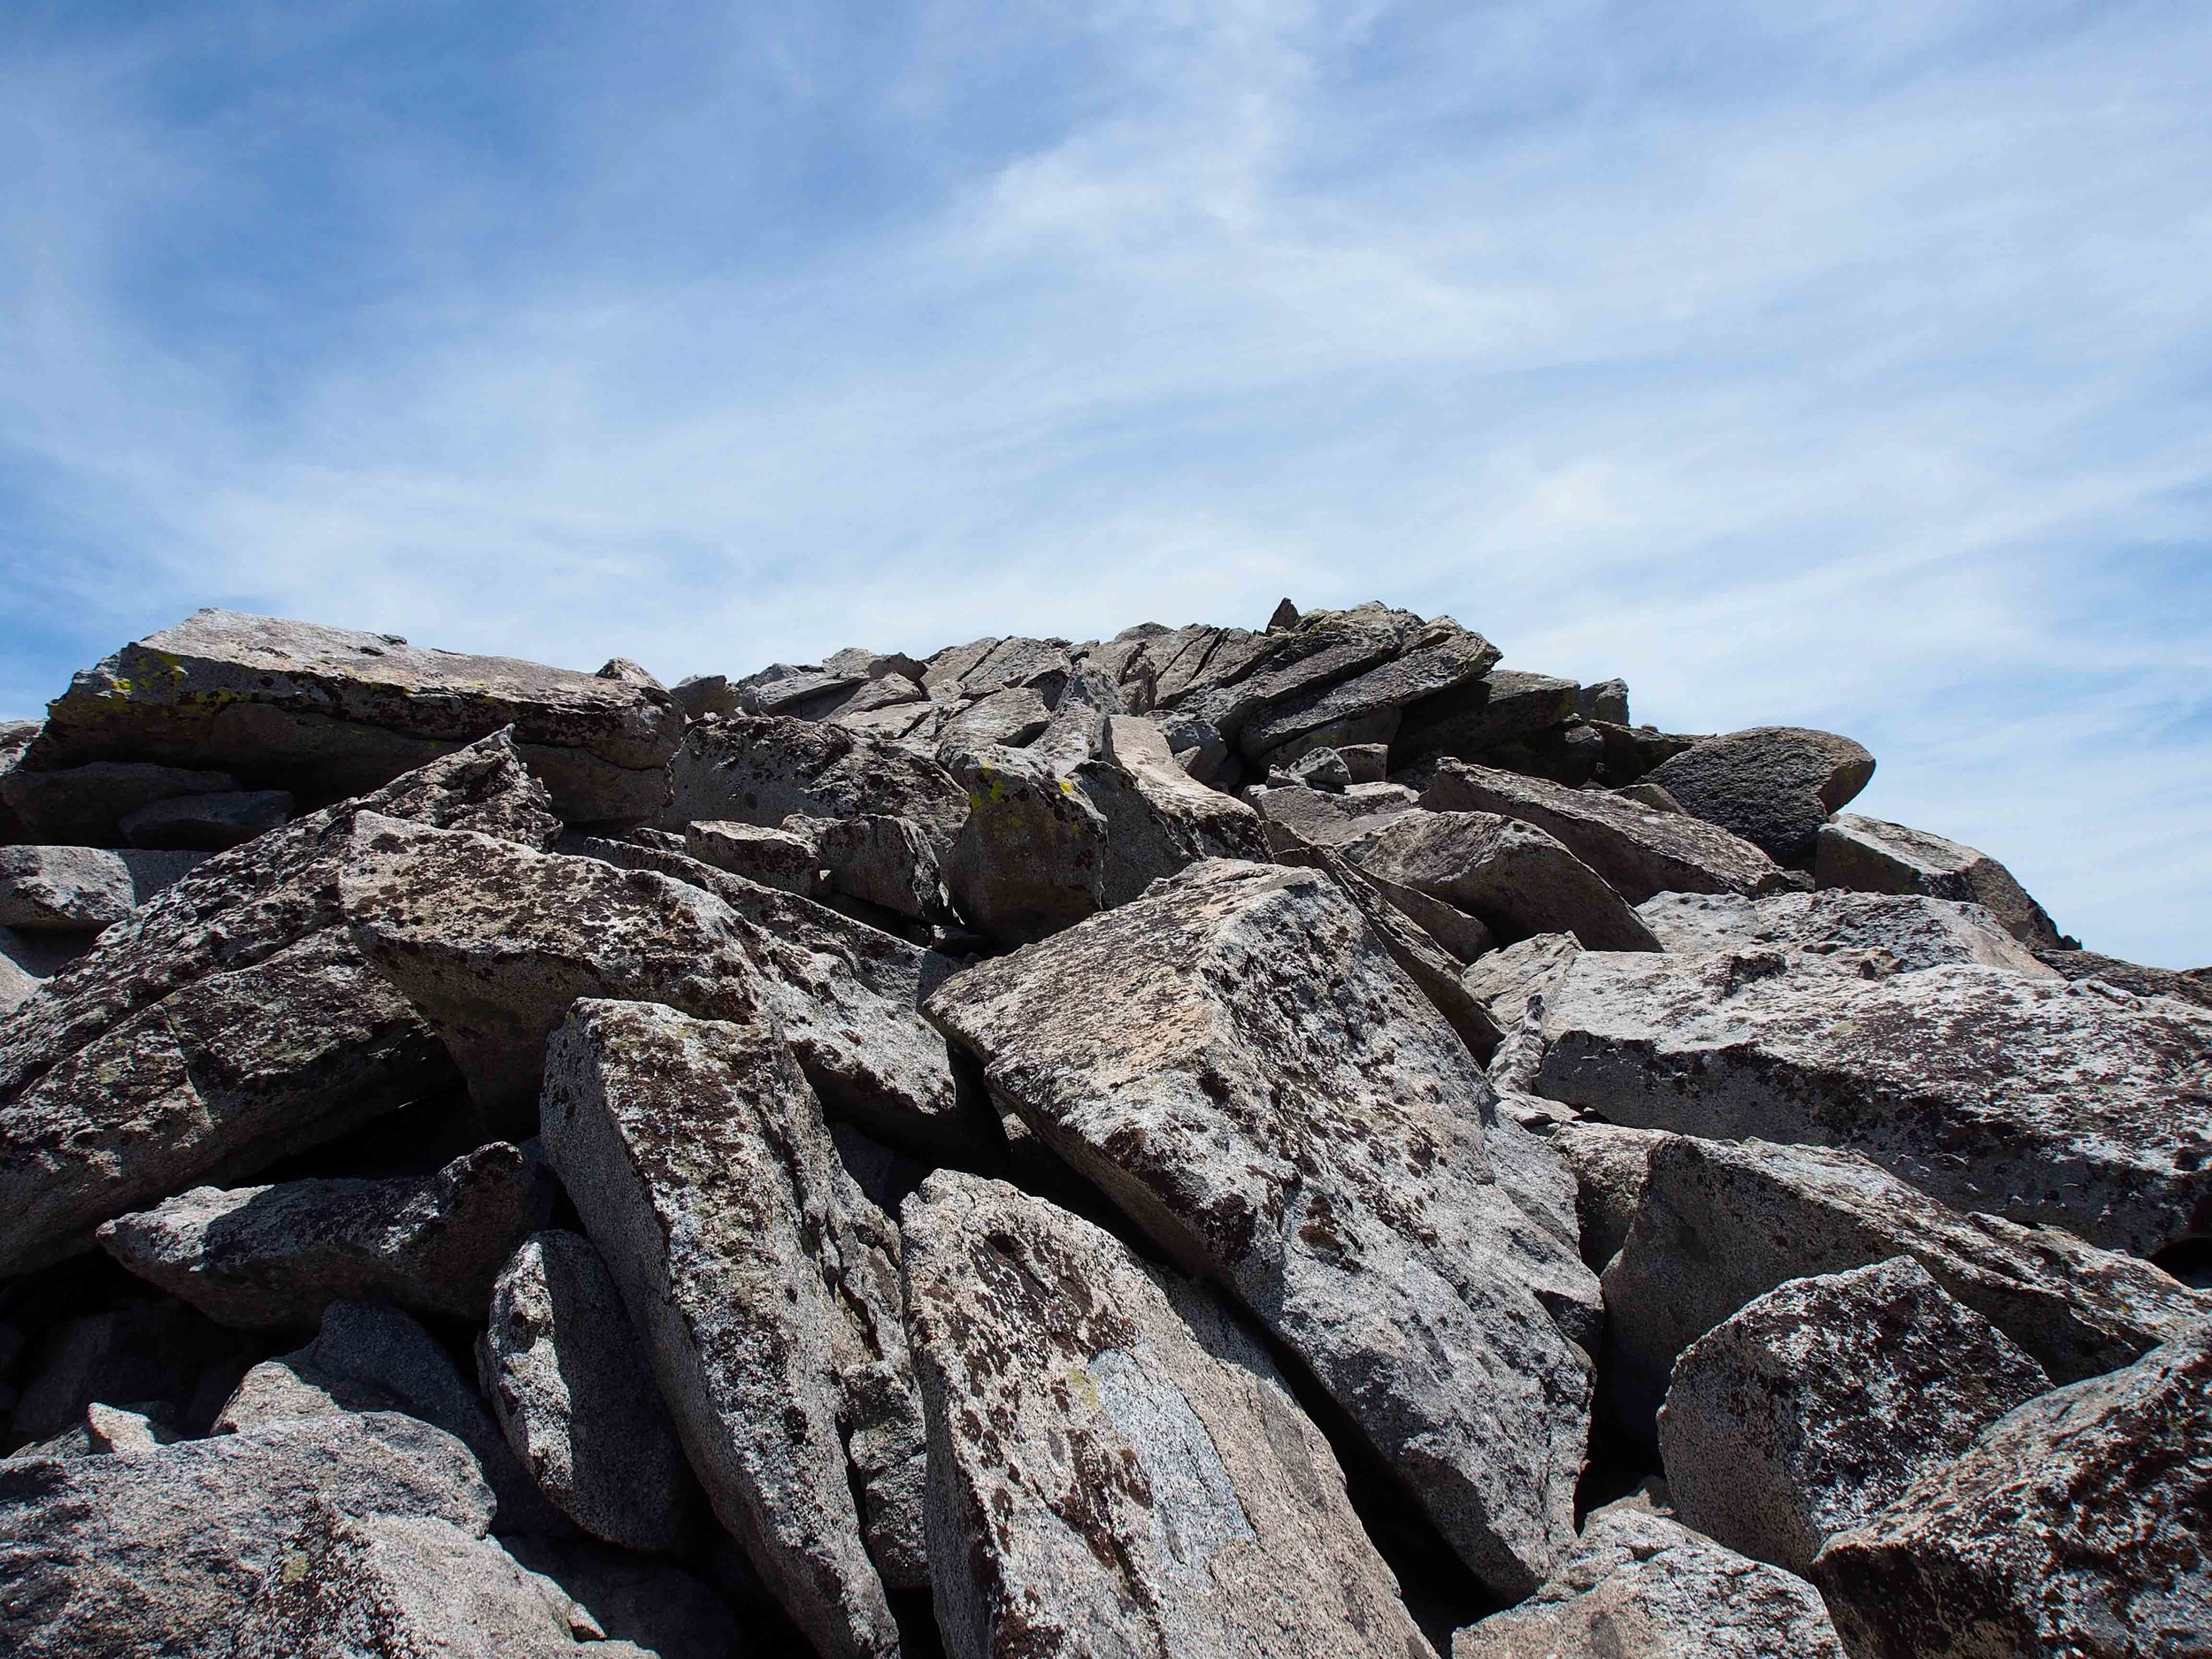 The final climb over boulders to the peak